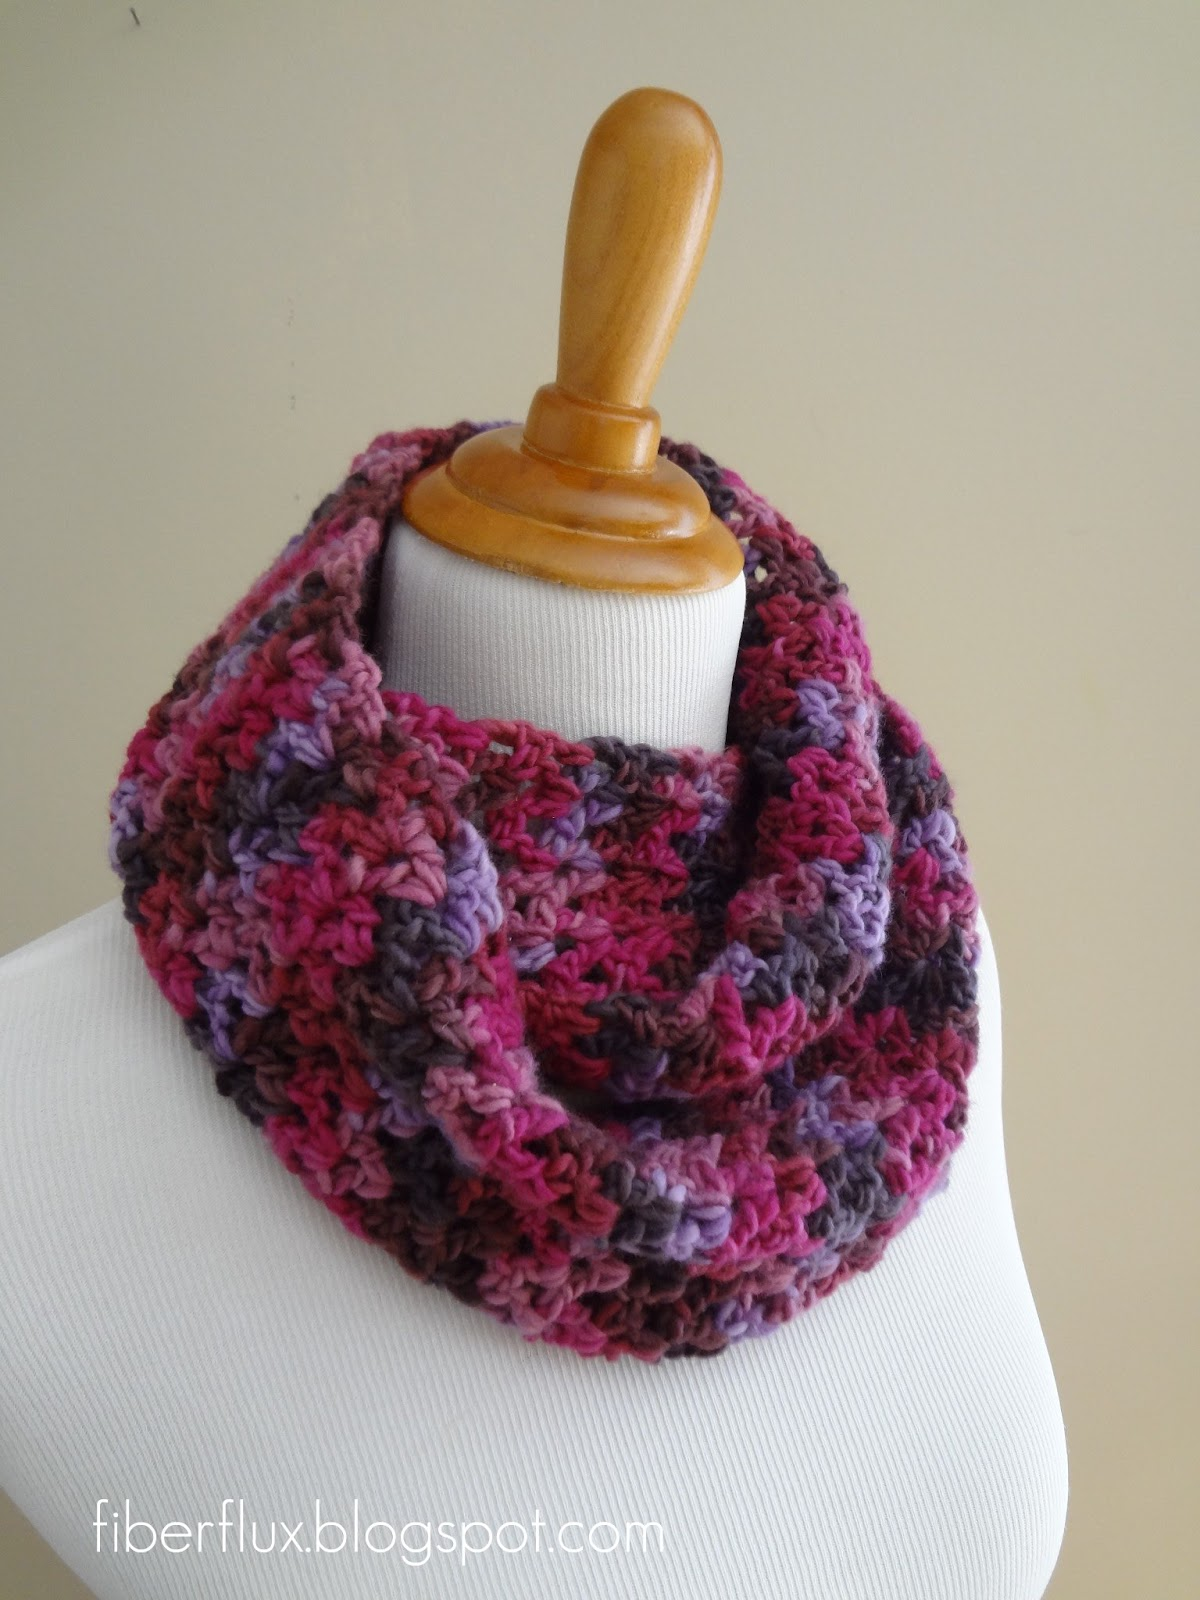 Crocheting Ends Of Infinity Scarf Together : Whip stitch the two ends together. Weave in all ends and youre ...